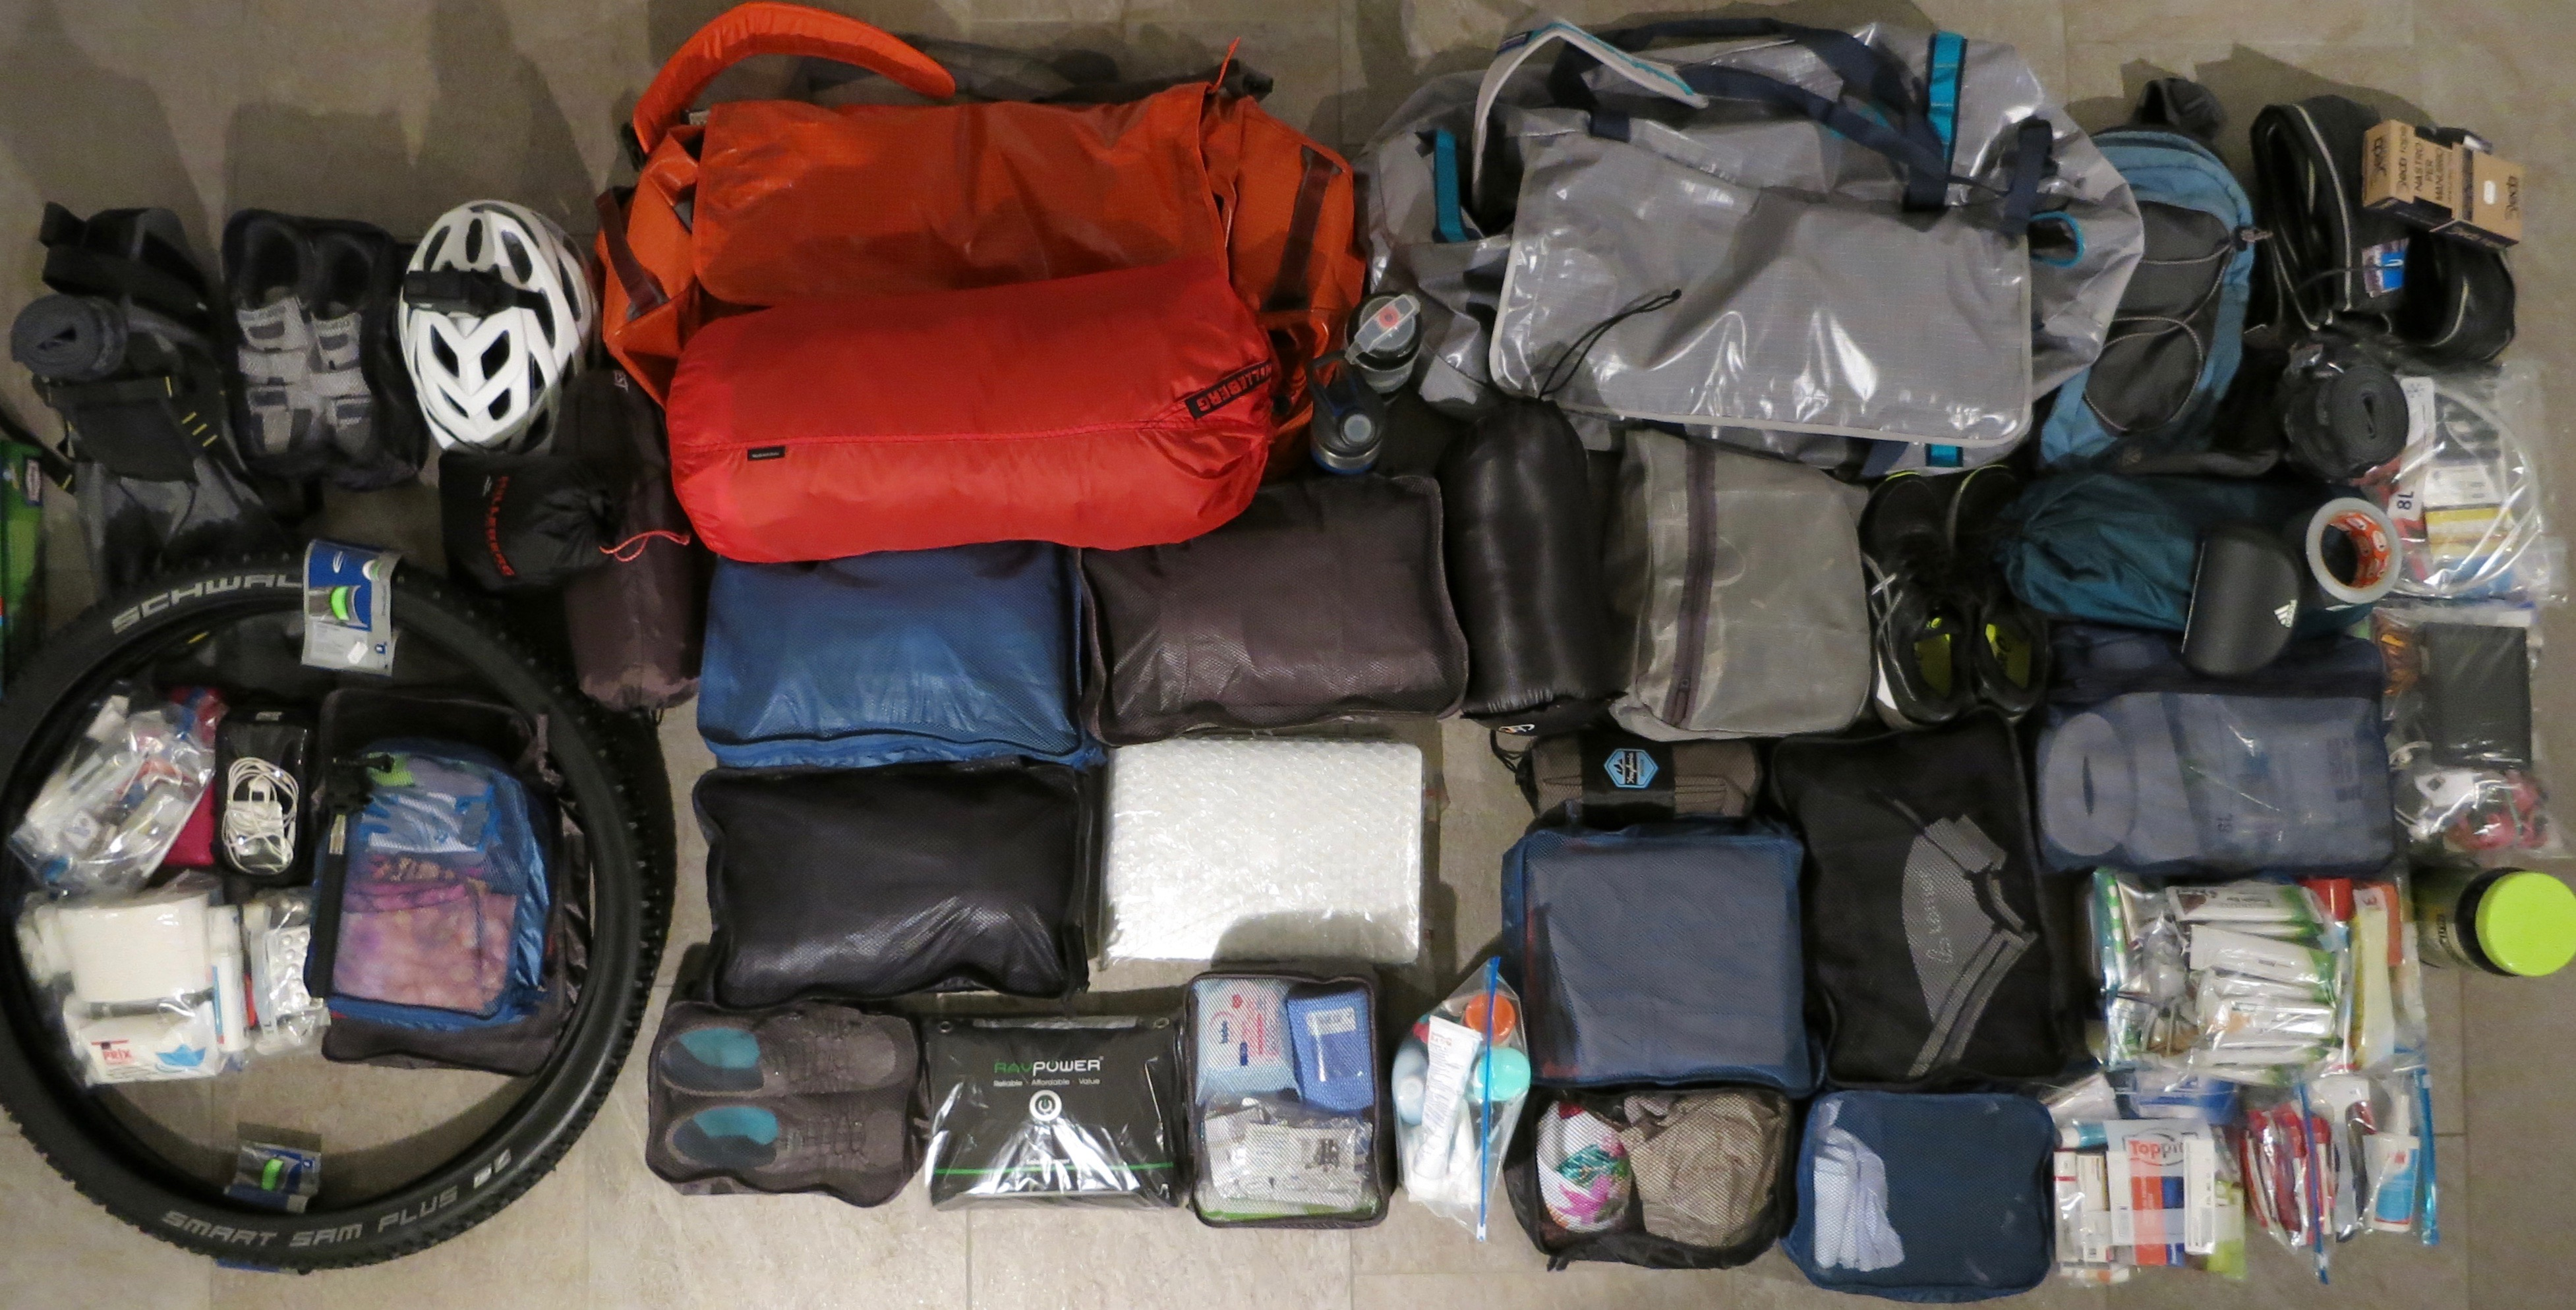 My gear compartmentalized into garment cases and ziploc bags